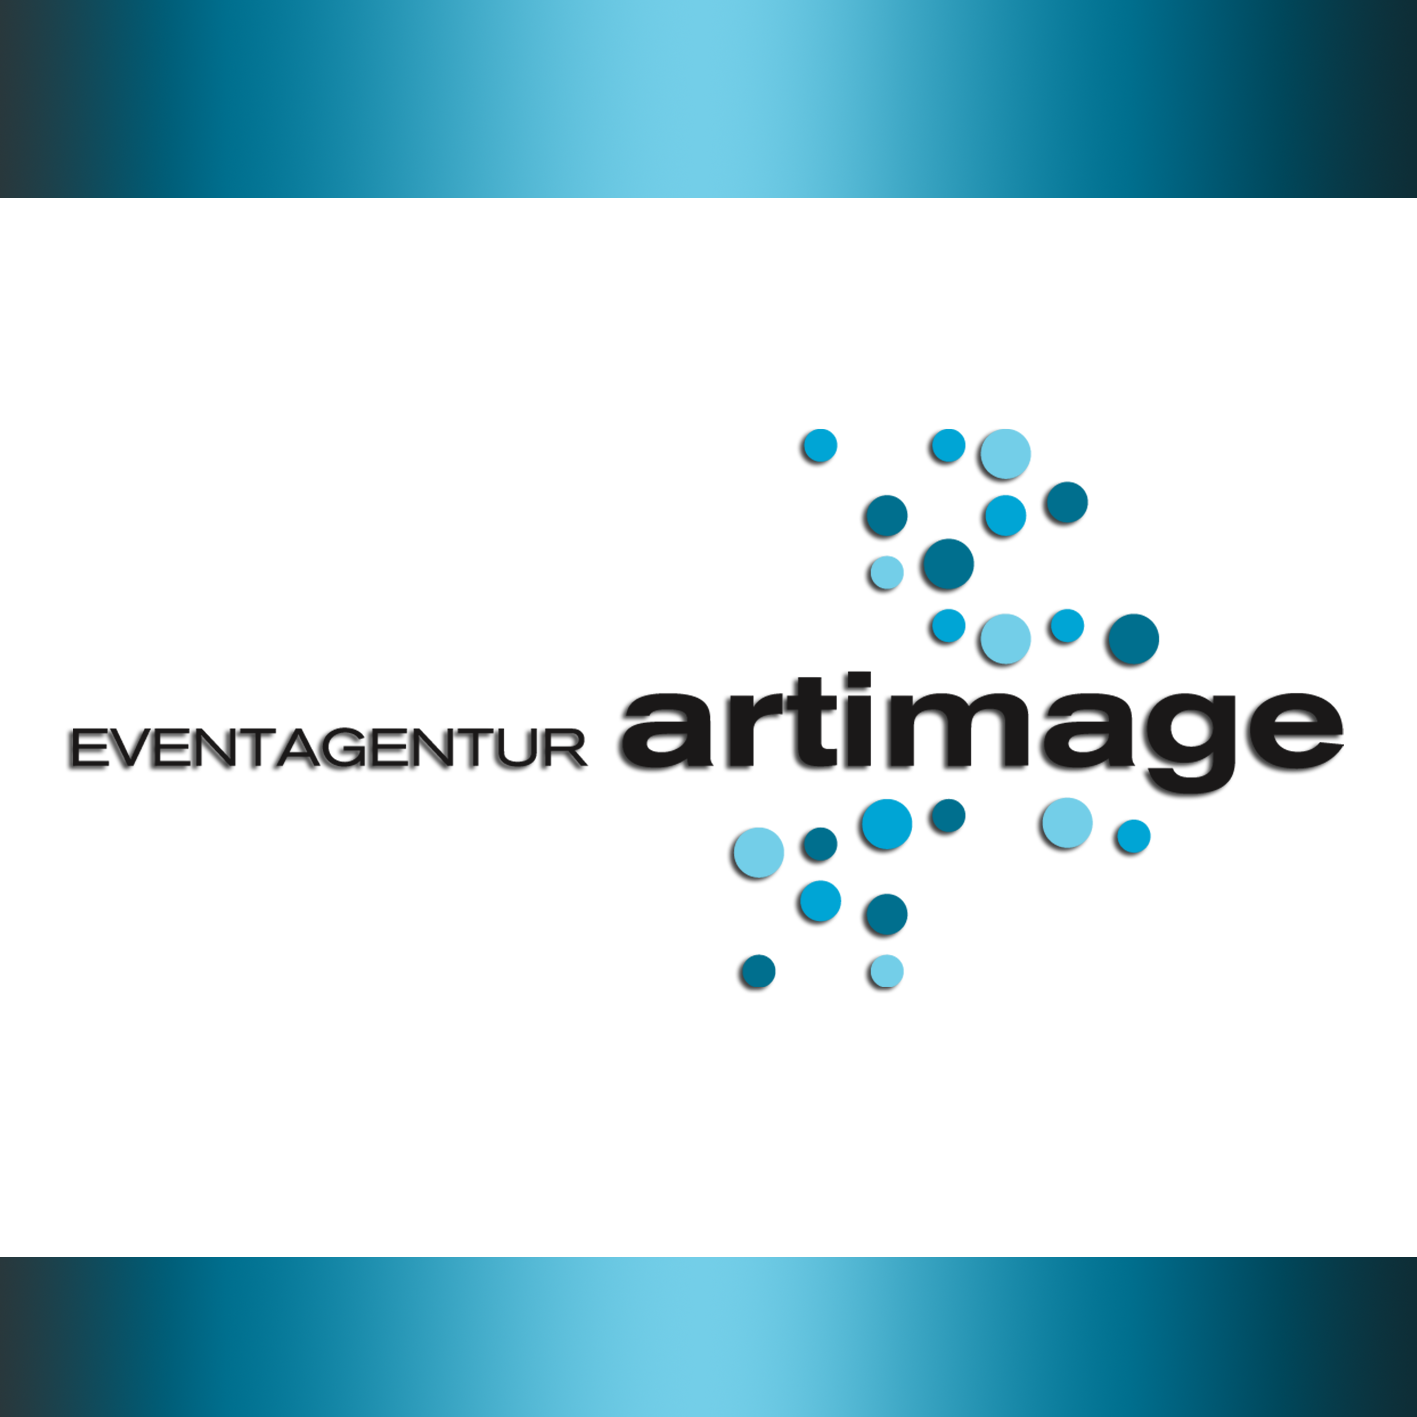 EVENTAGENTUR artimage e.K.